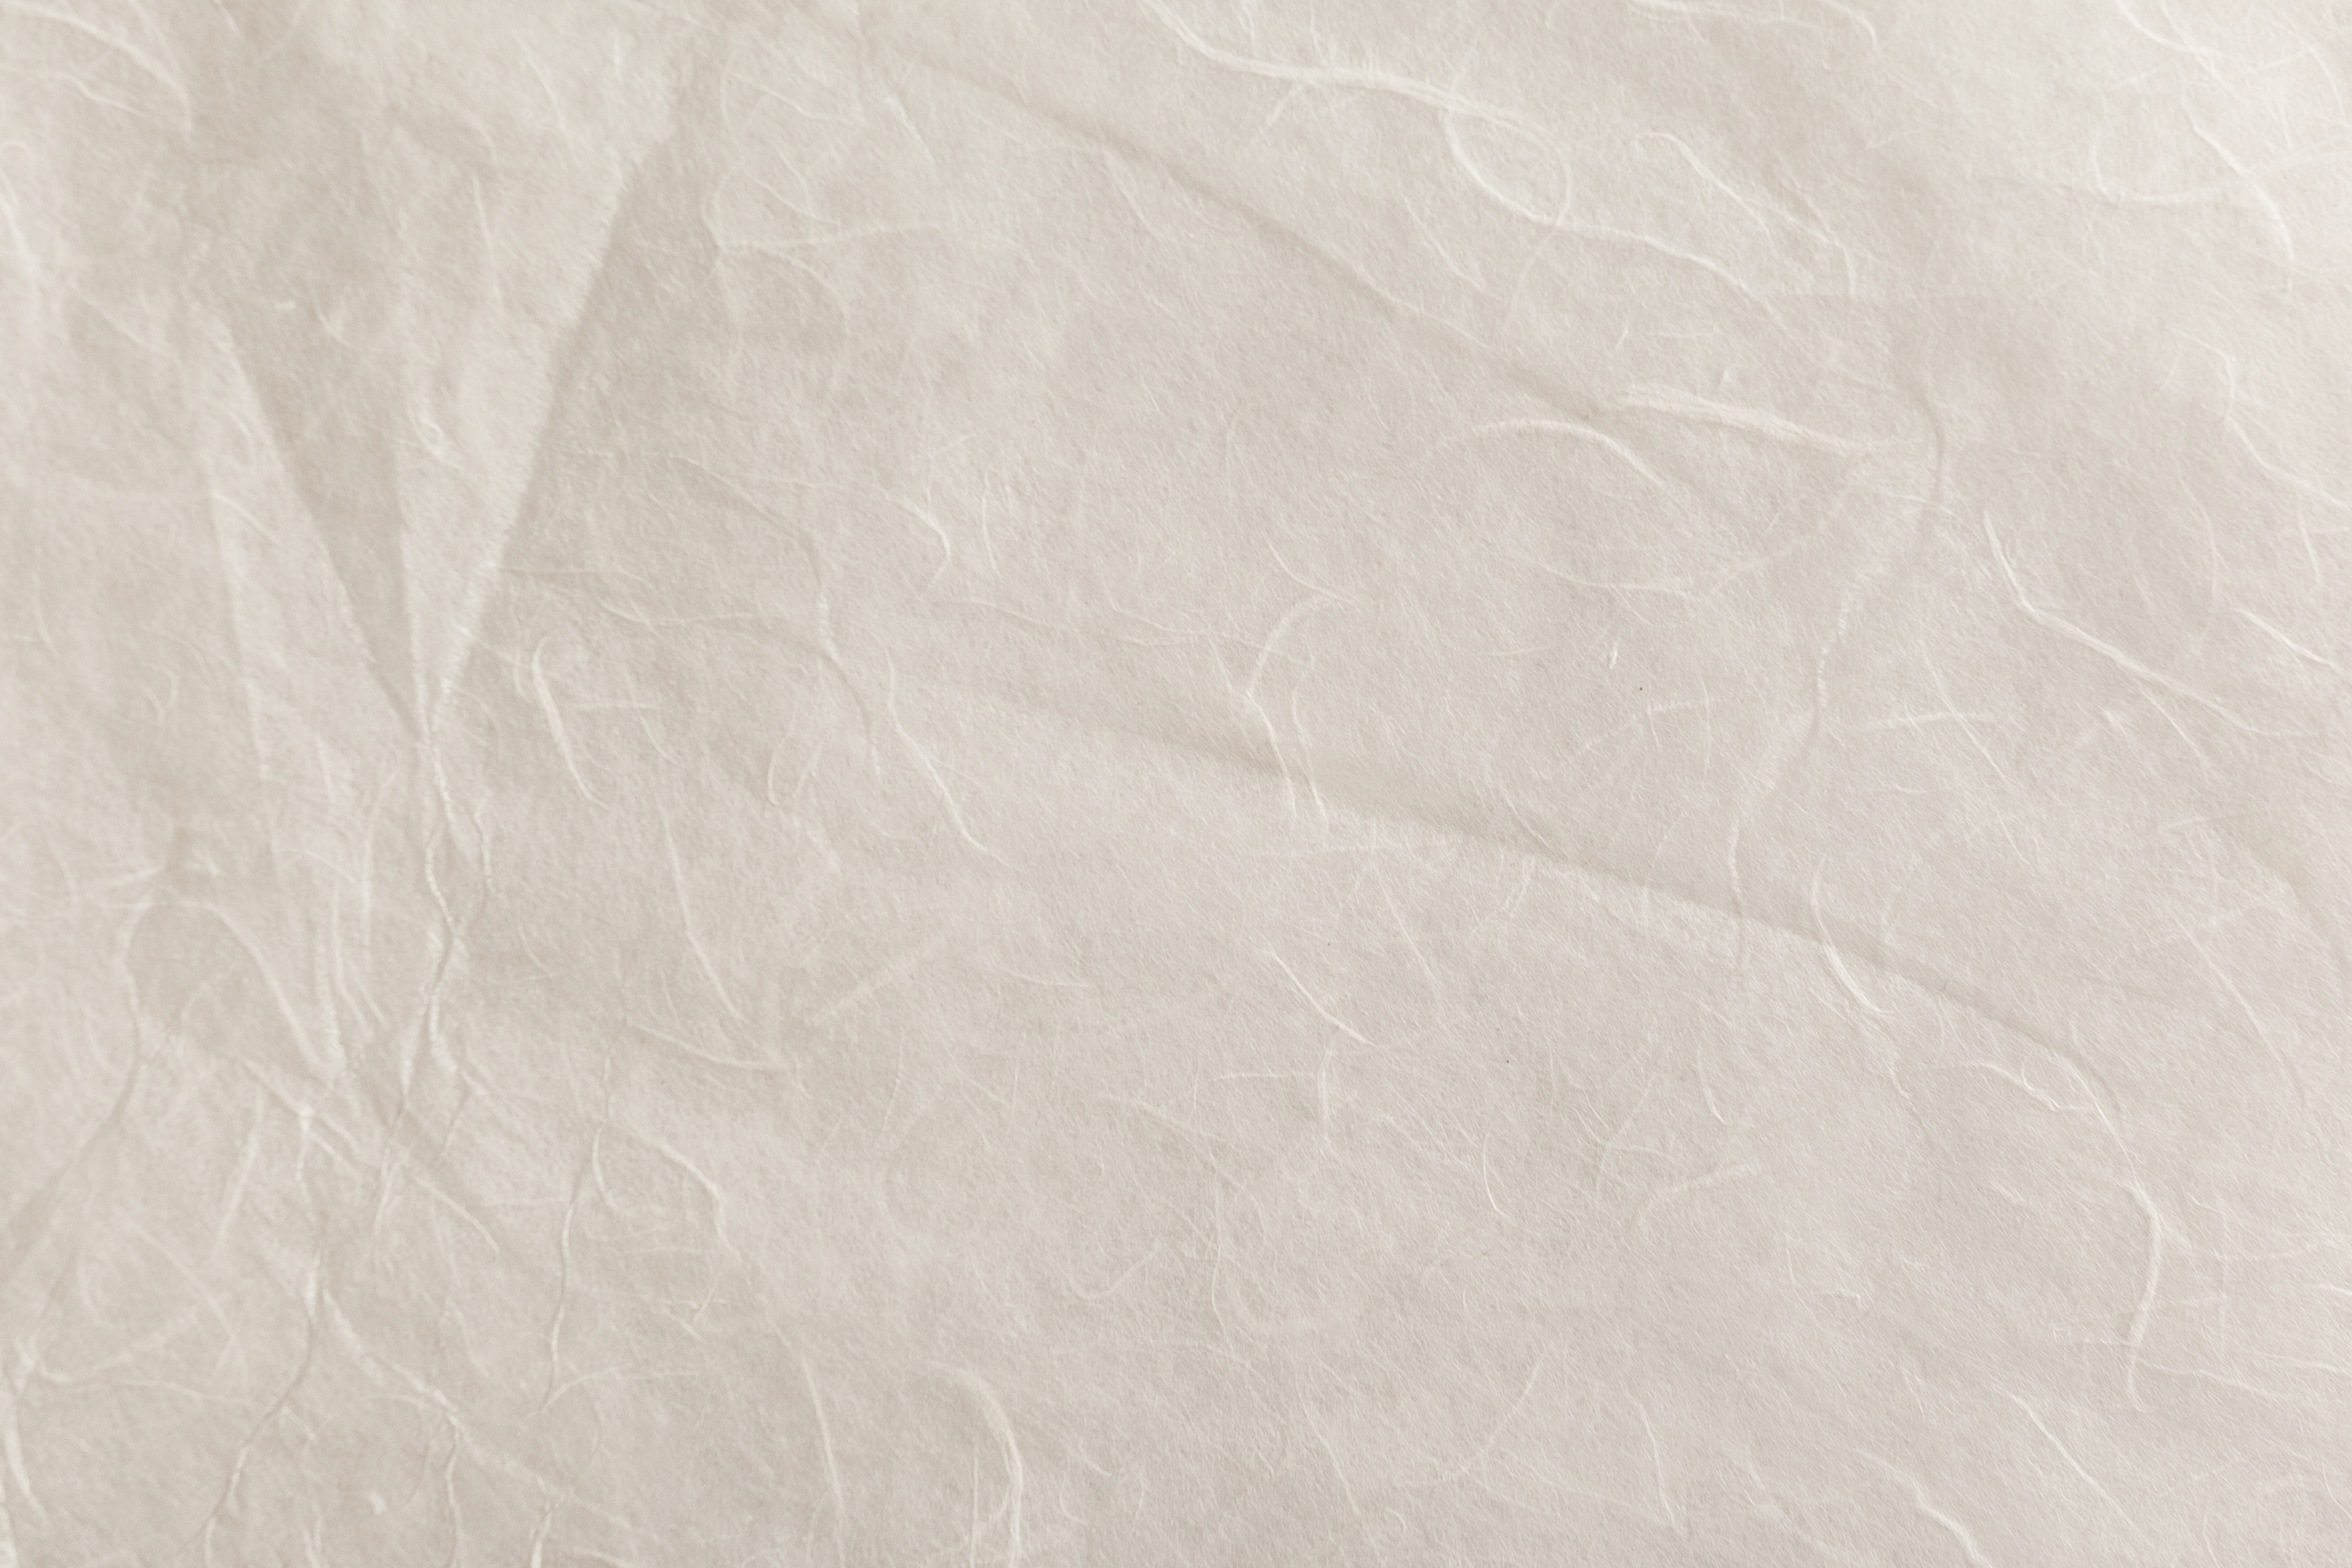 White Paper Texture, Cardboard, Light, Paper, Papers, HQ Photo